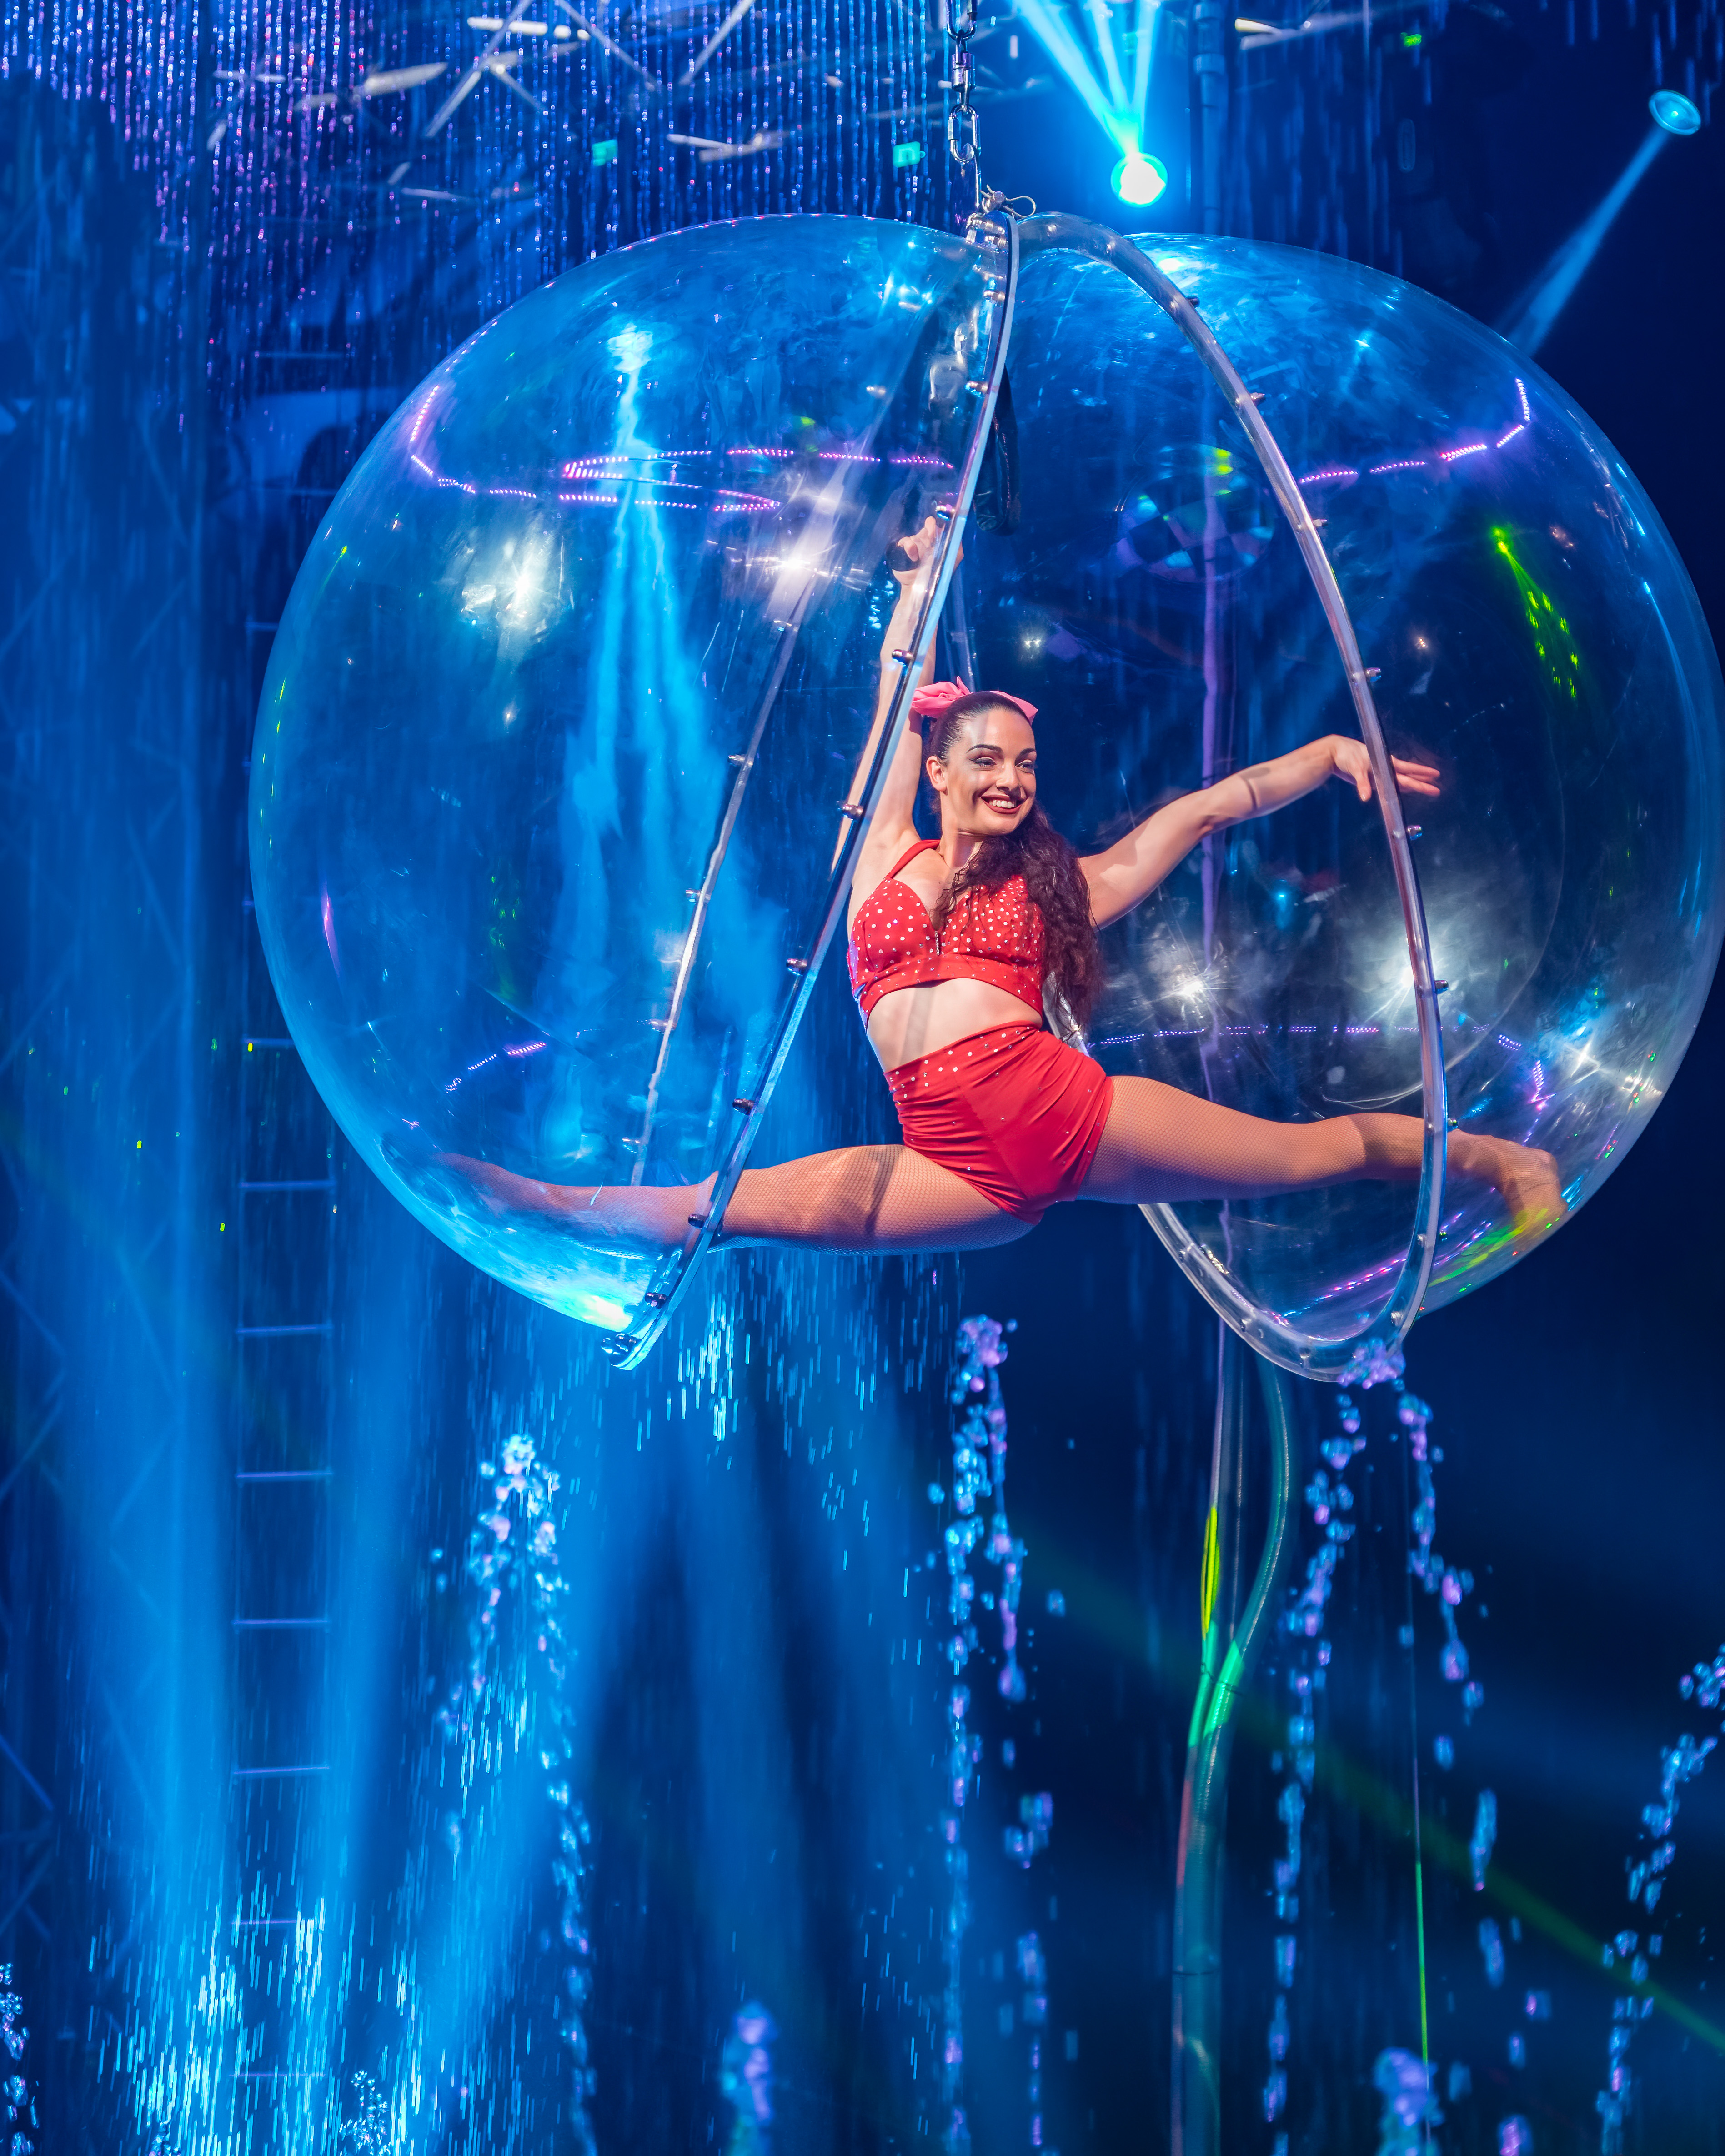 Submitted Angelica Cardinali - Bubble Contortion - Roman Smolkin (5) (1).jpg